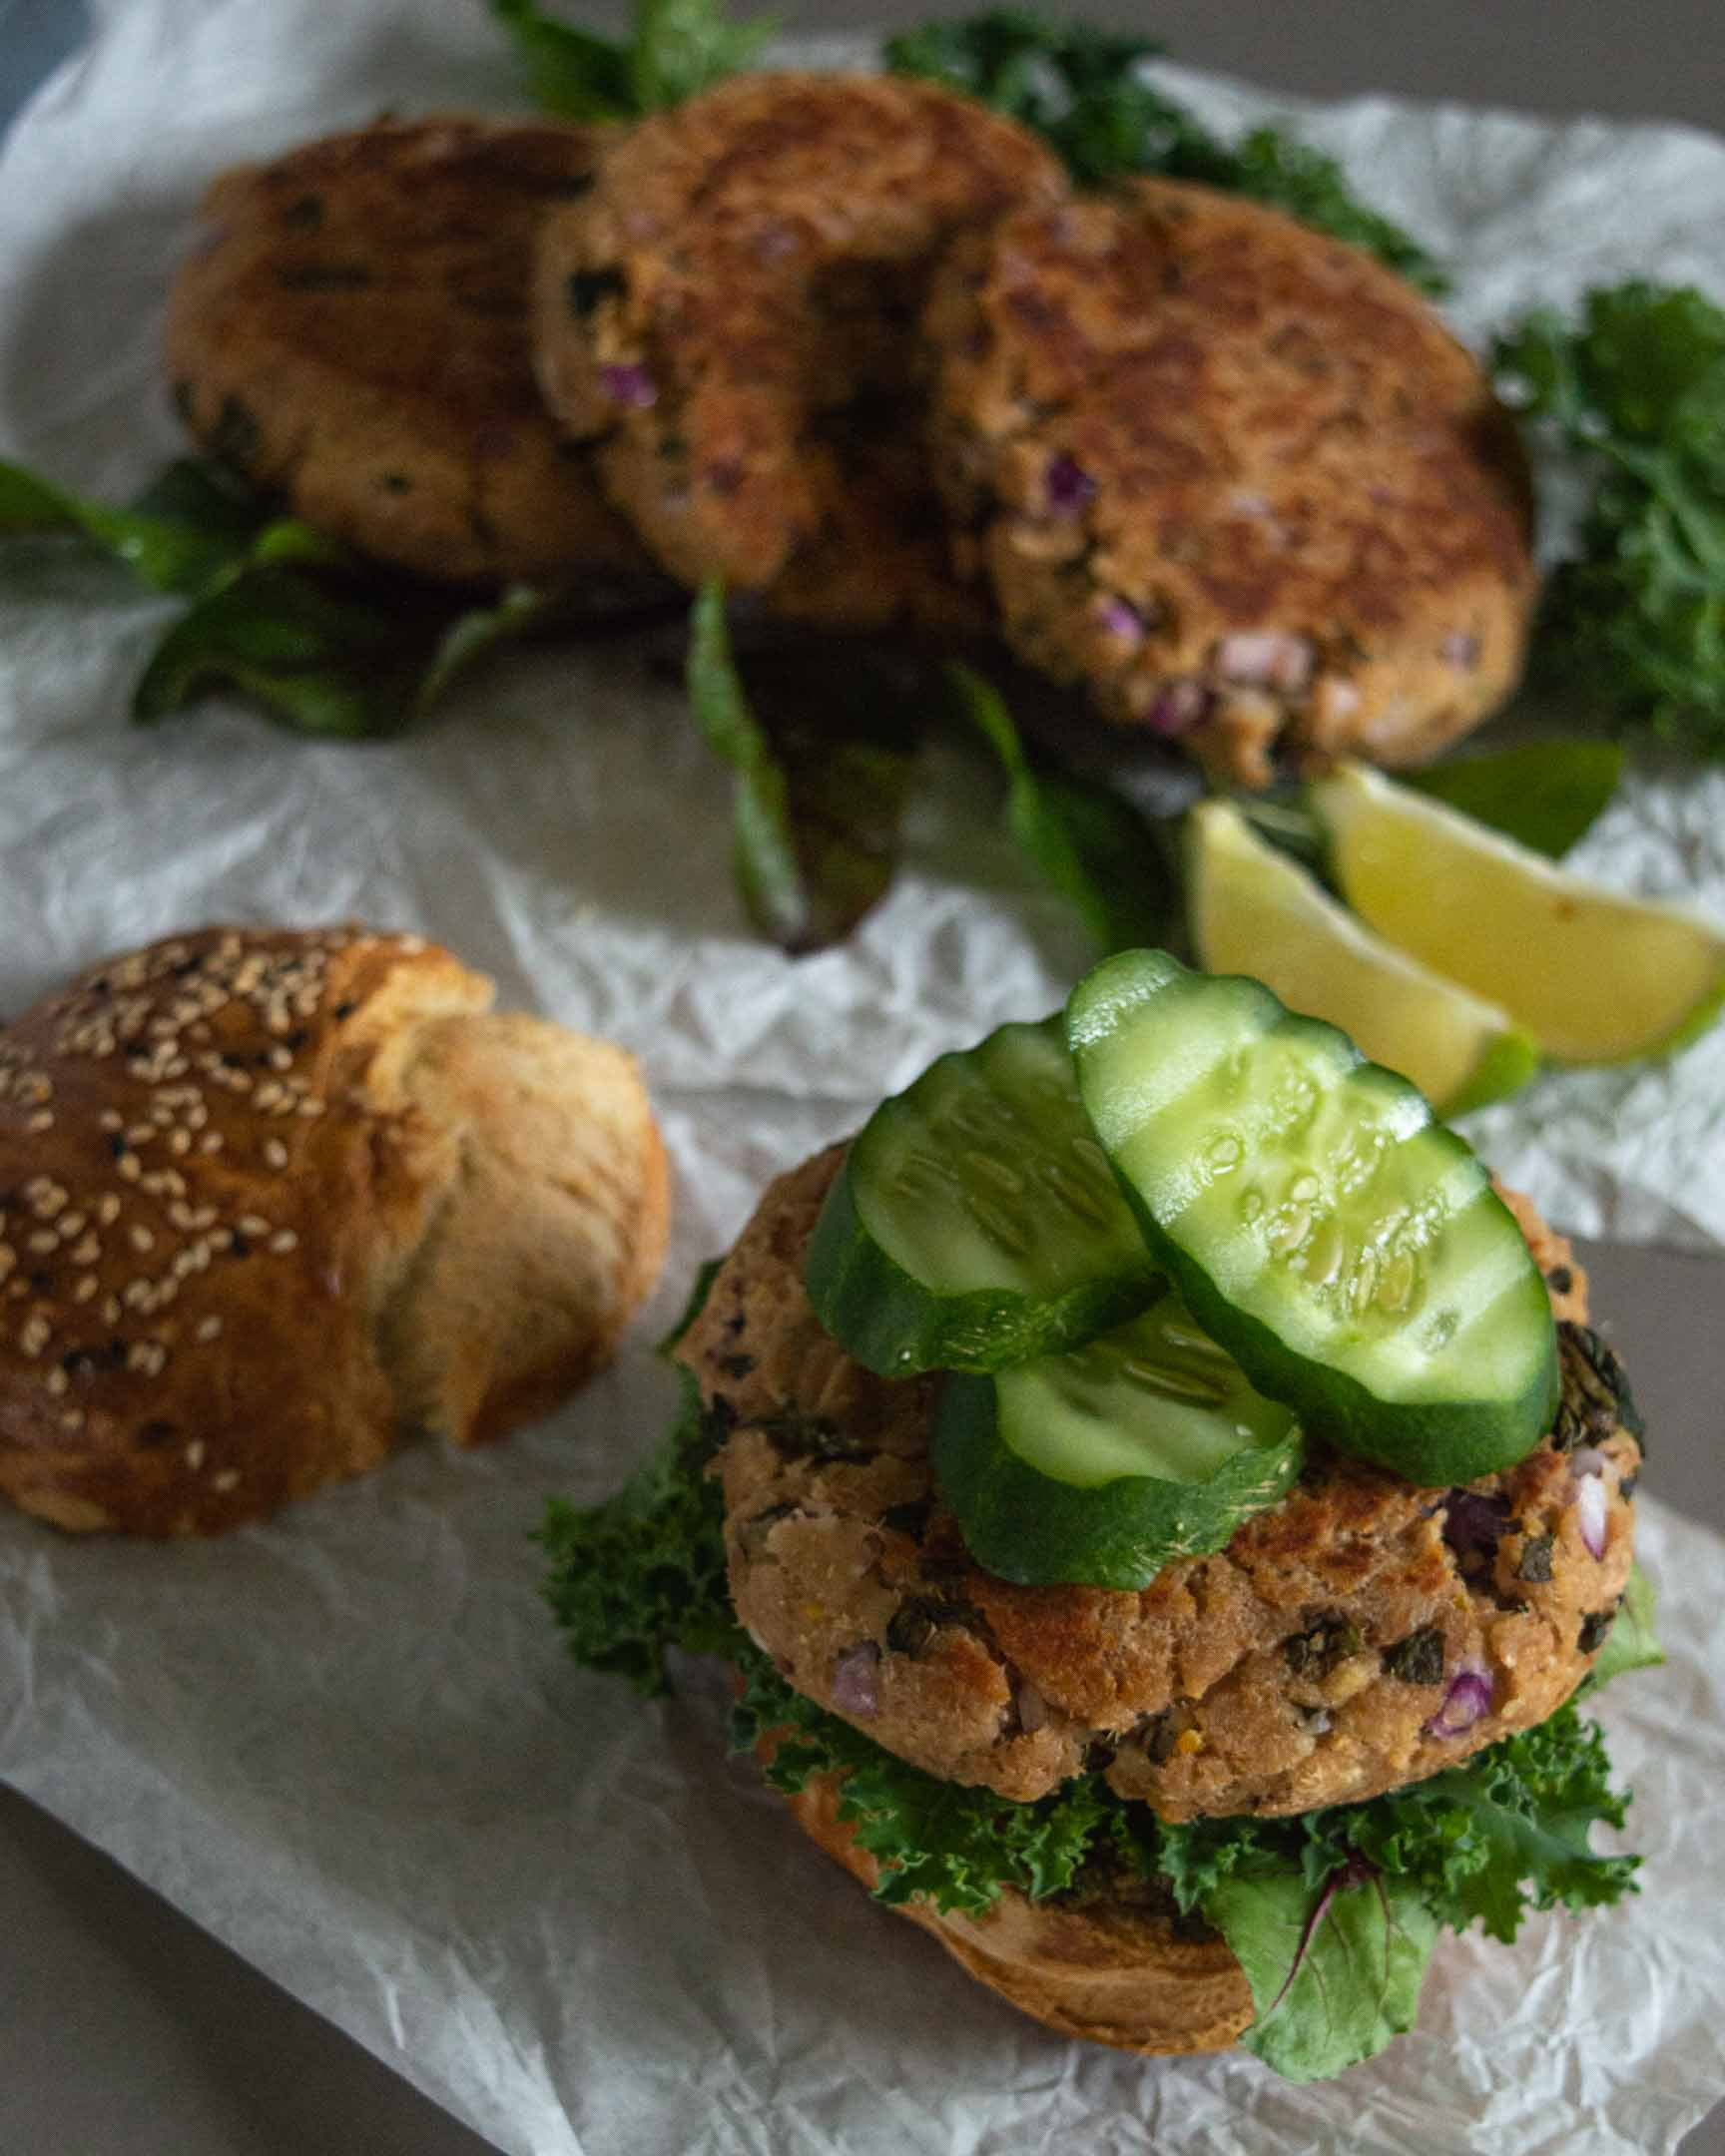 quick tuna burgers with salad, served with a bun and salad